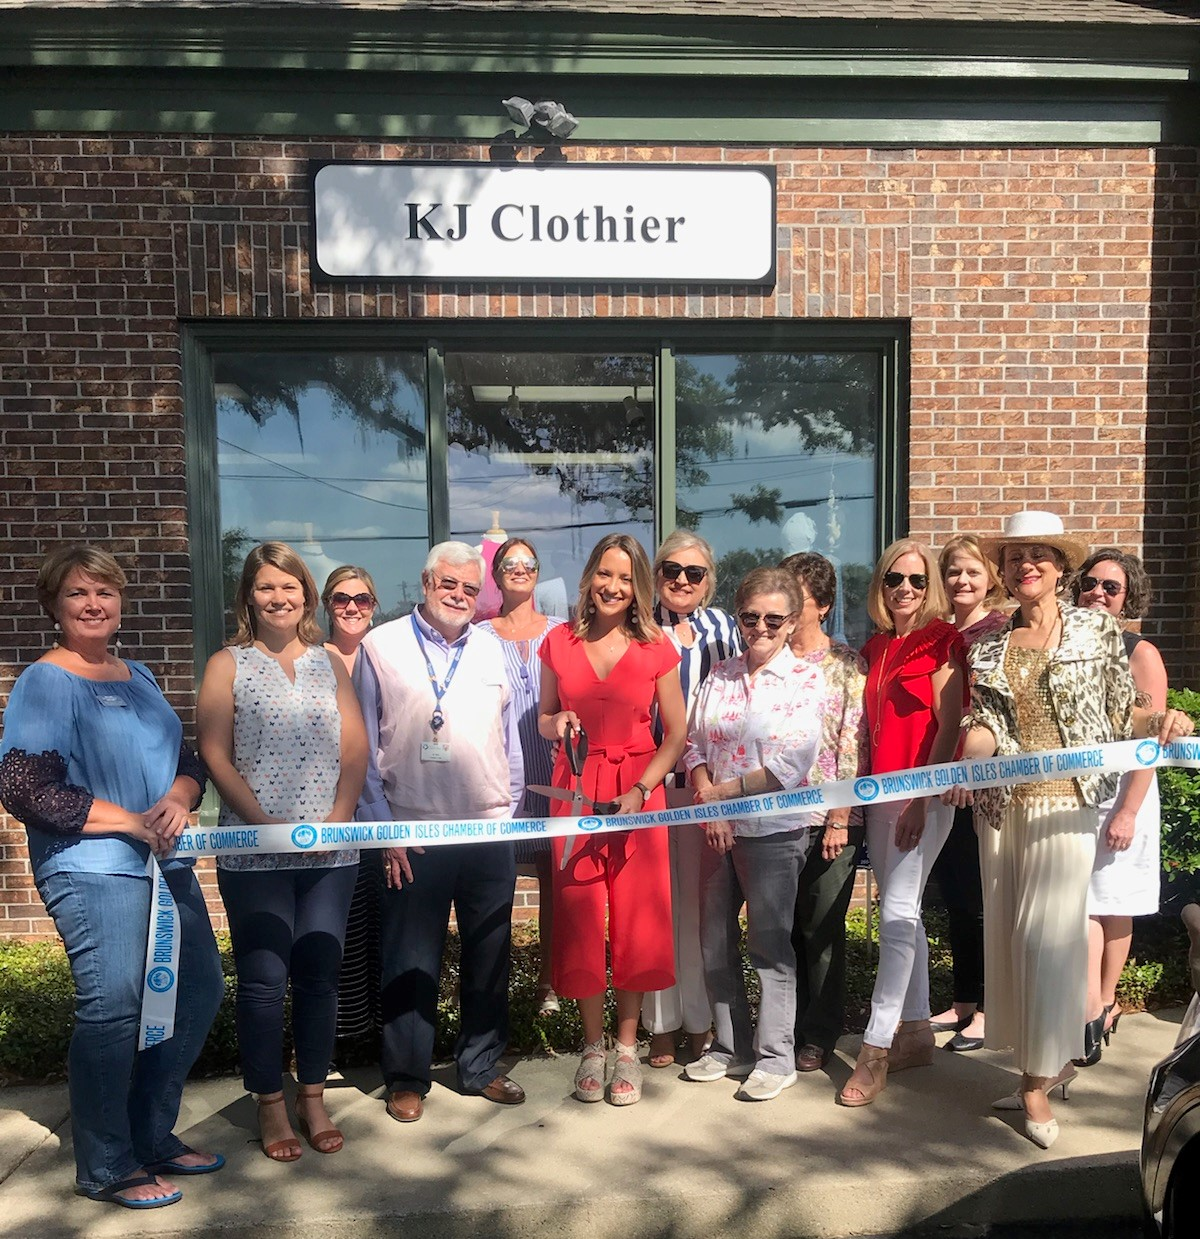 kj-clothier-ribbon-cutting-05-2018.jpg